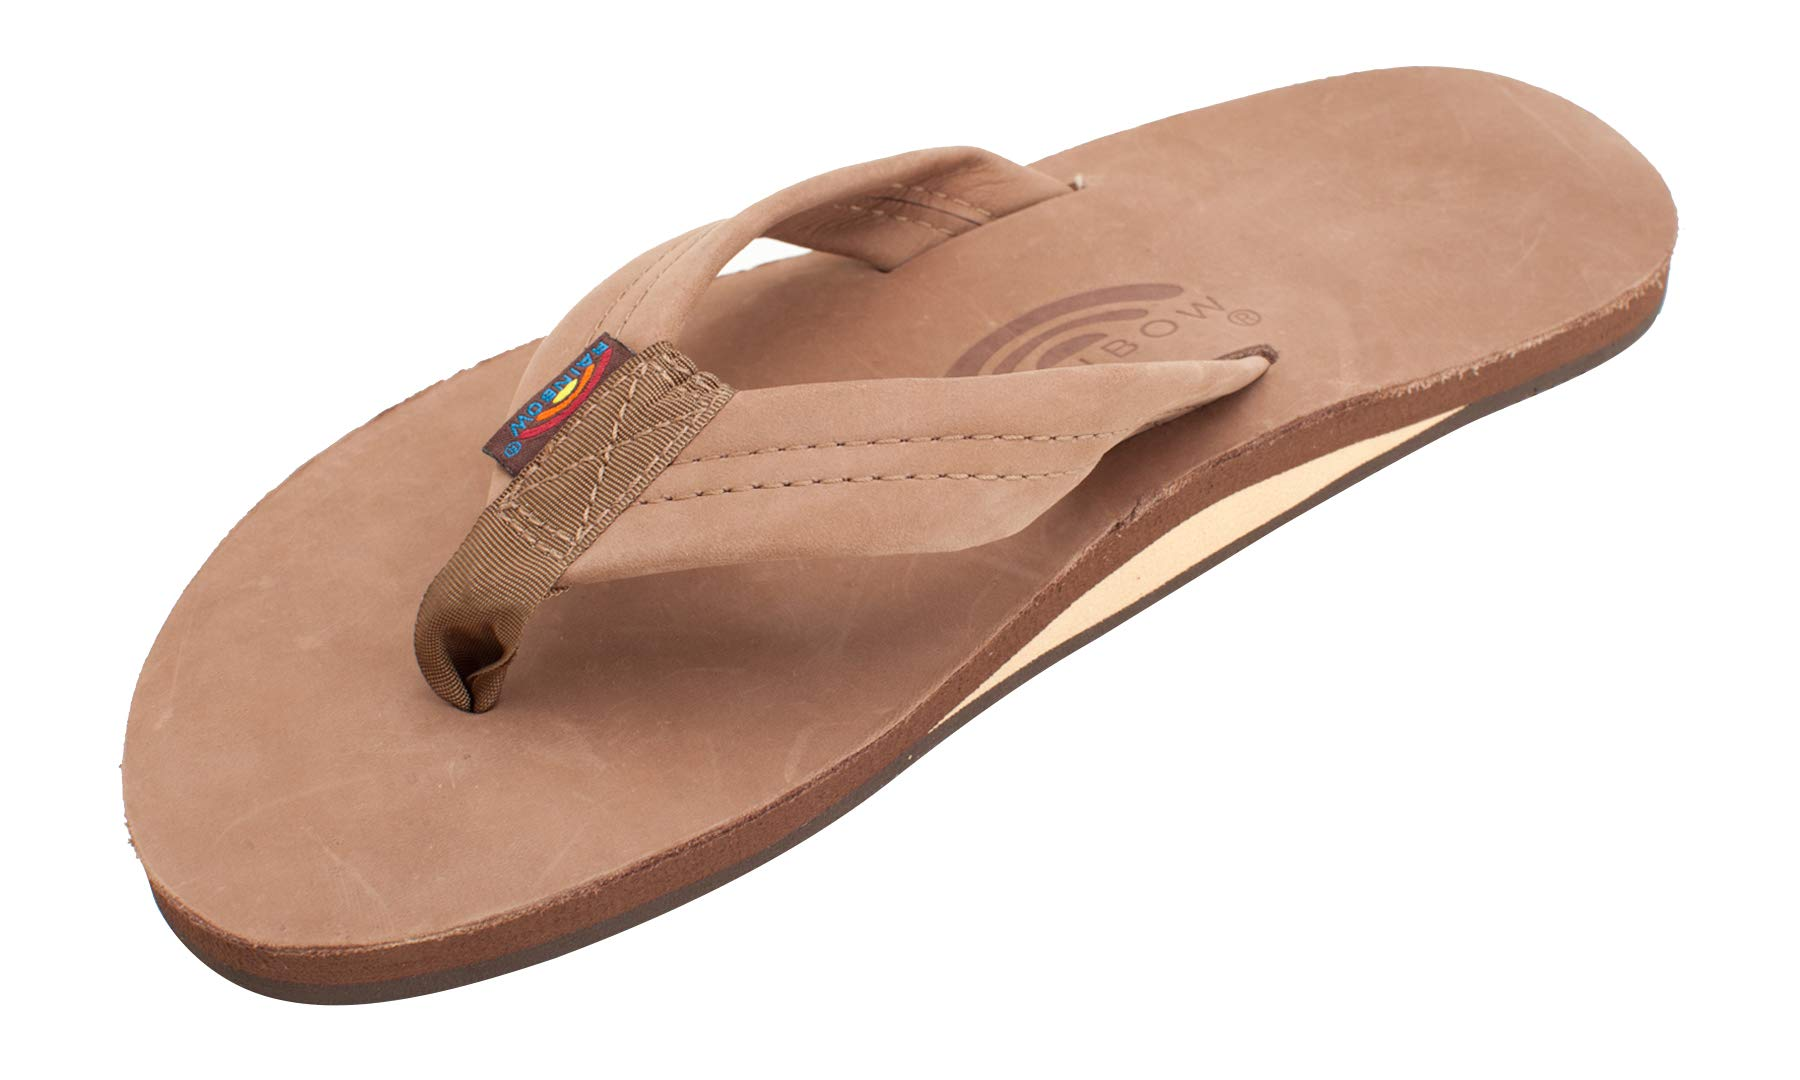 Rainbow Sandals Men's Premier Leather Single Layer Wide Strap with Arch, Dark Brown, Men's Large / 9.5-10.5 D(M) US